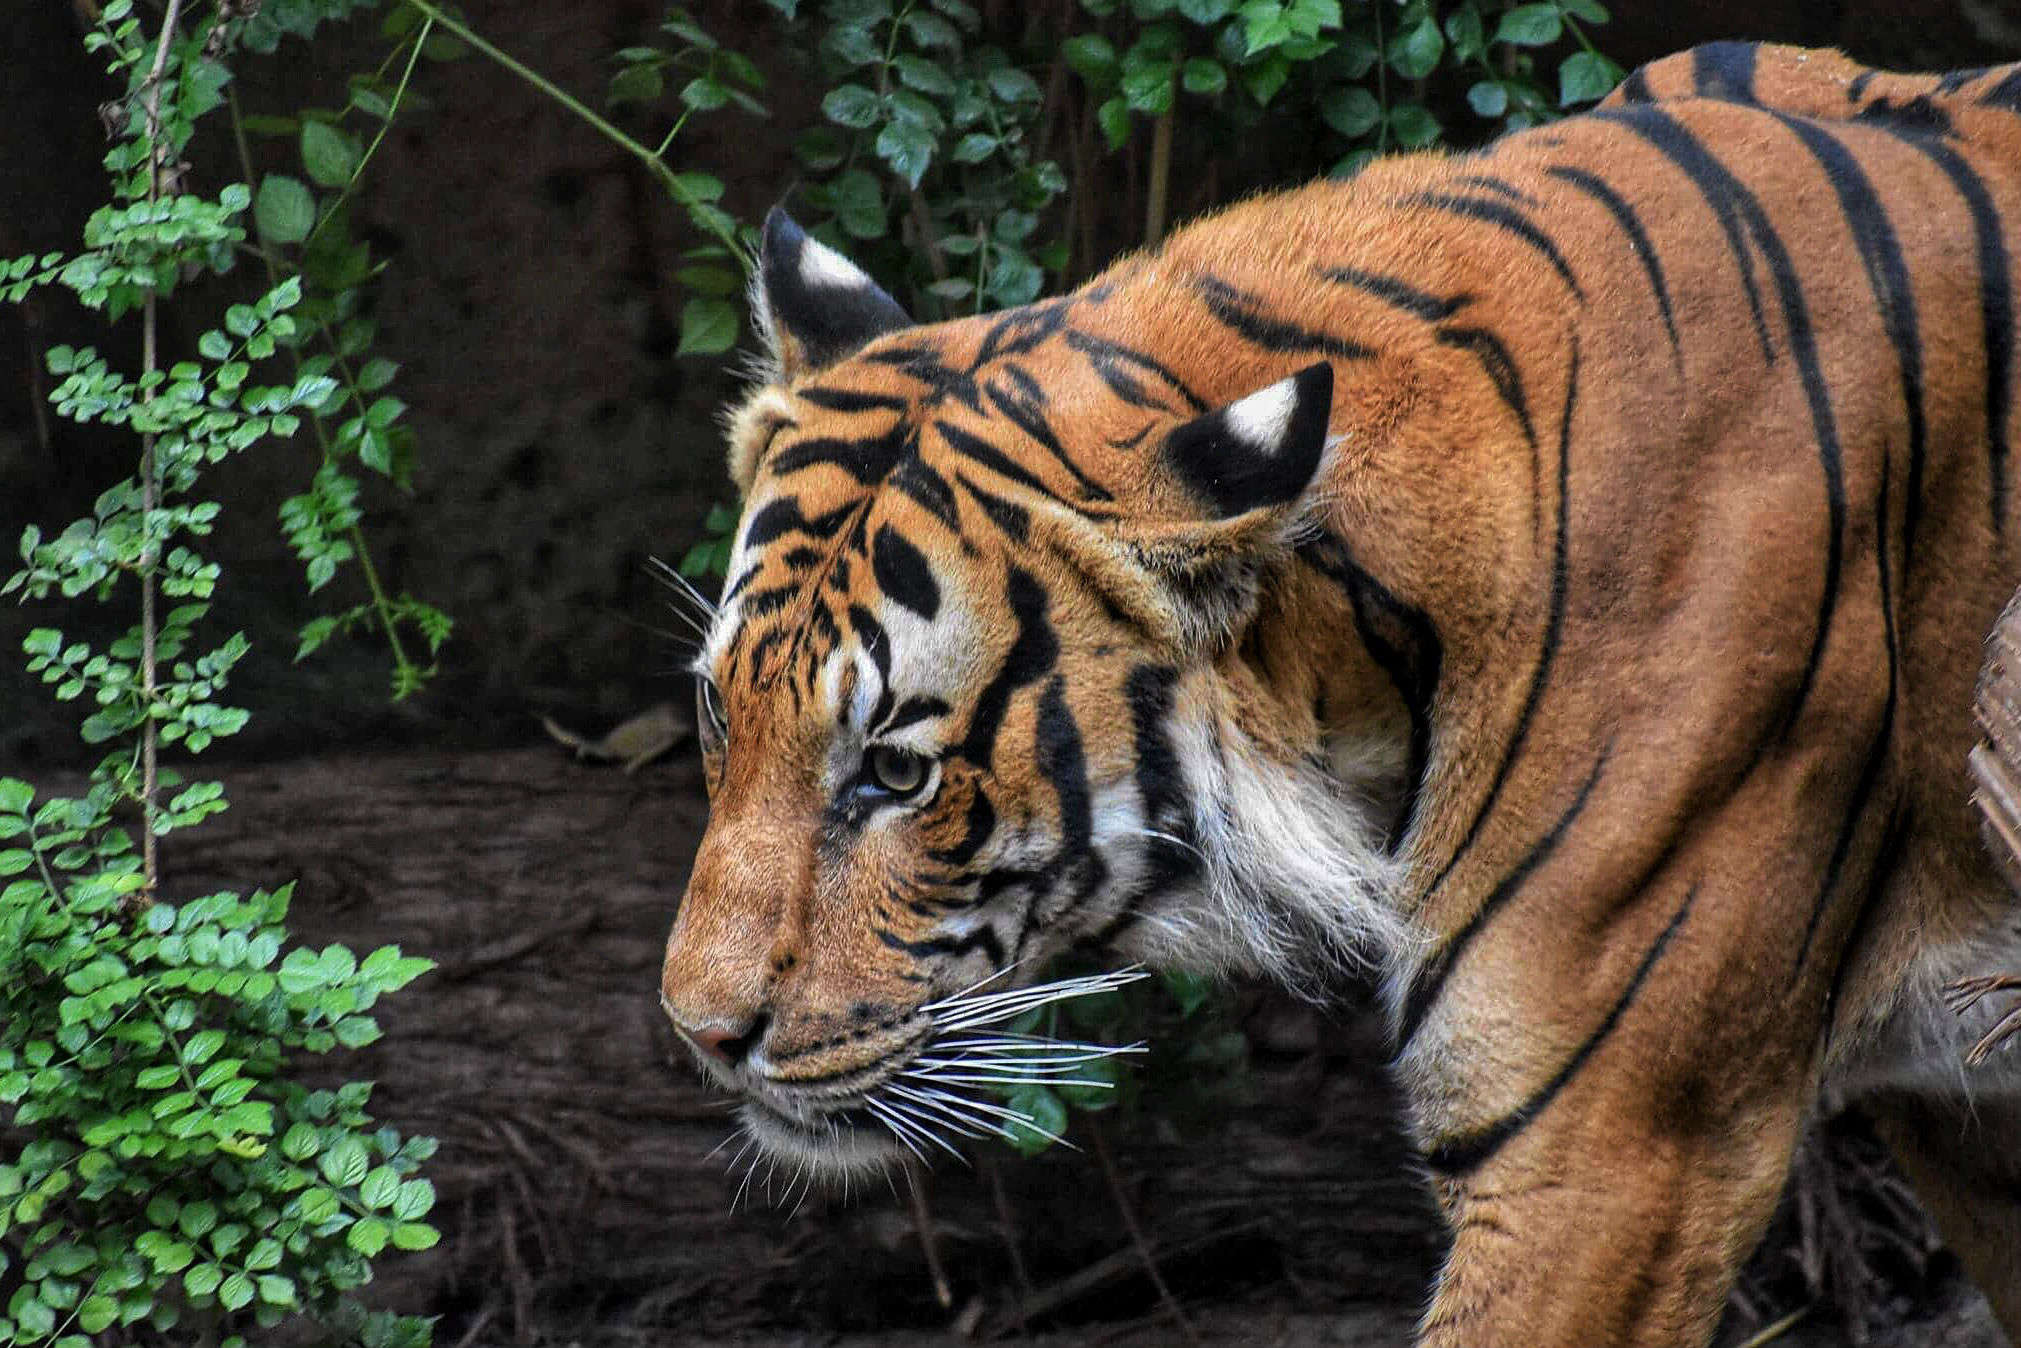 Bihar Tourism to promote ecotourism, starting with Valmiki Tiger Reserve